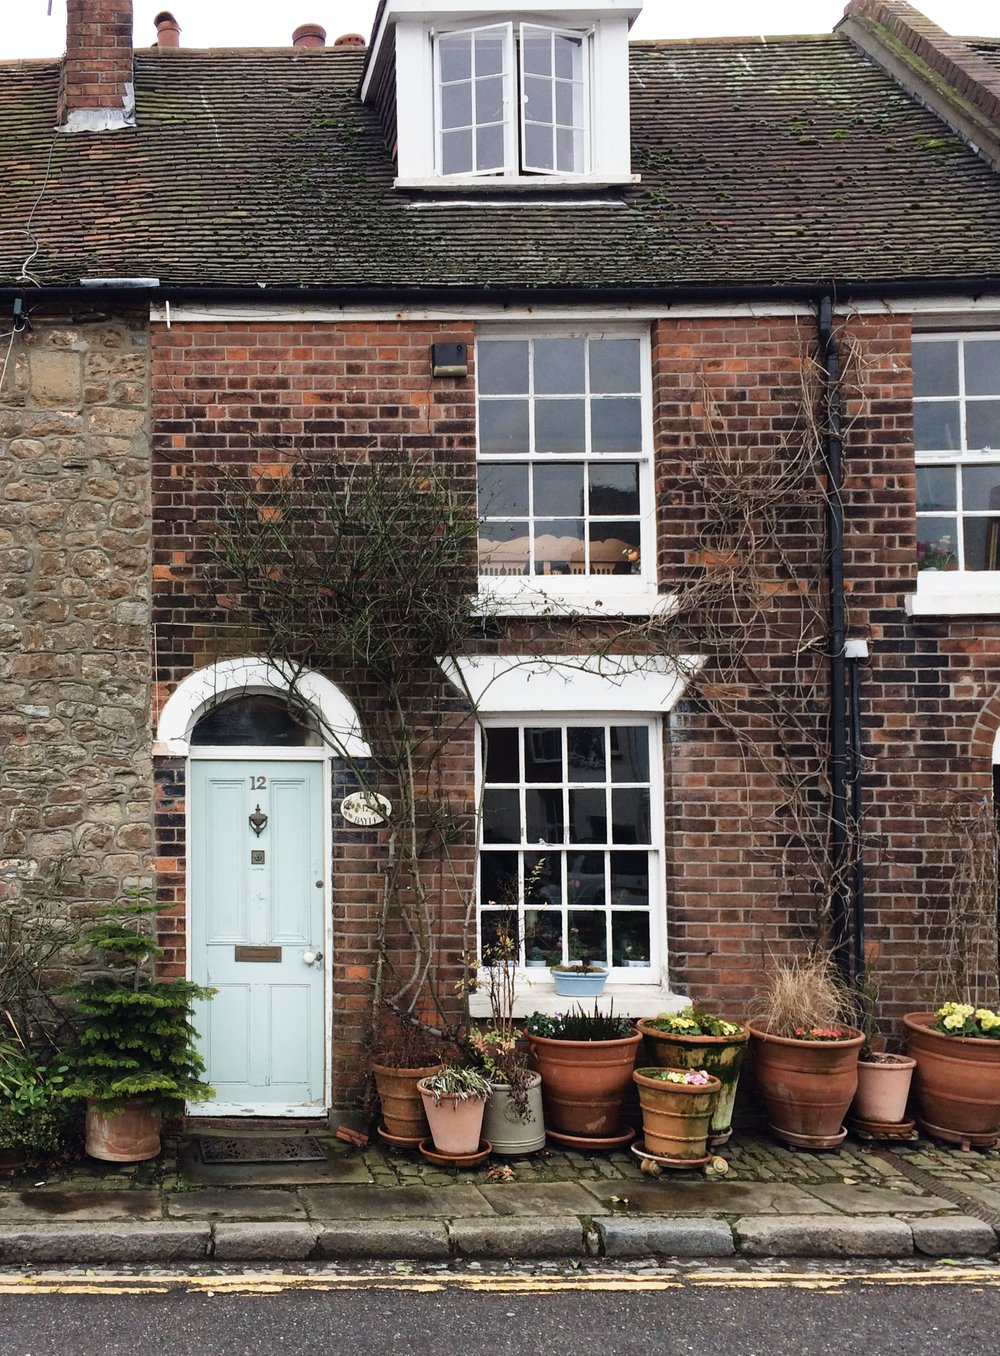 Quaint cottages at the Bayle by Small Acorns.JPG